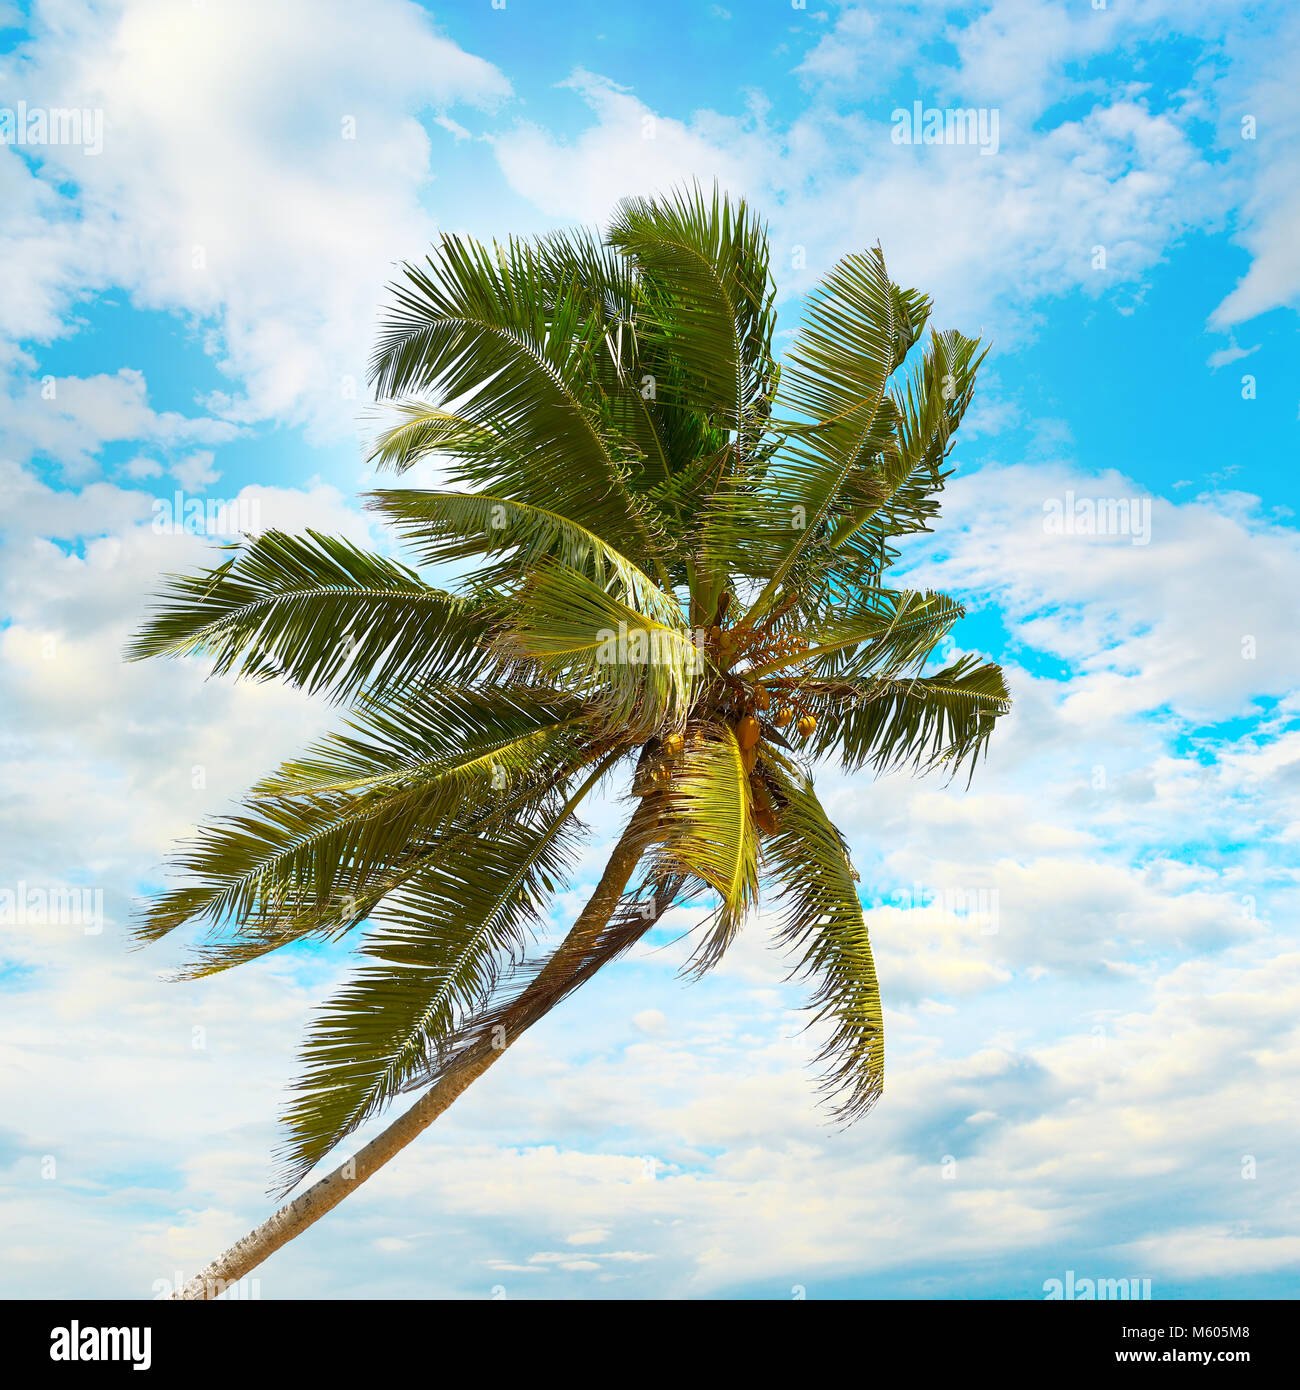 Coconut palm on background the blue sky with white clouds. - Stock Image